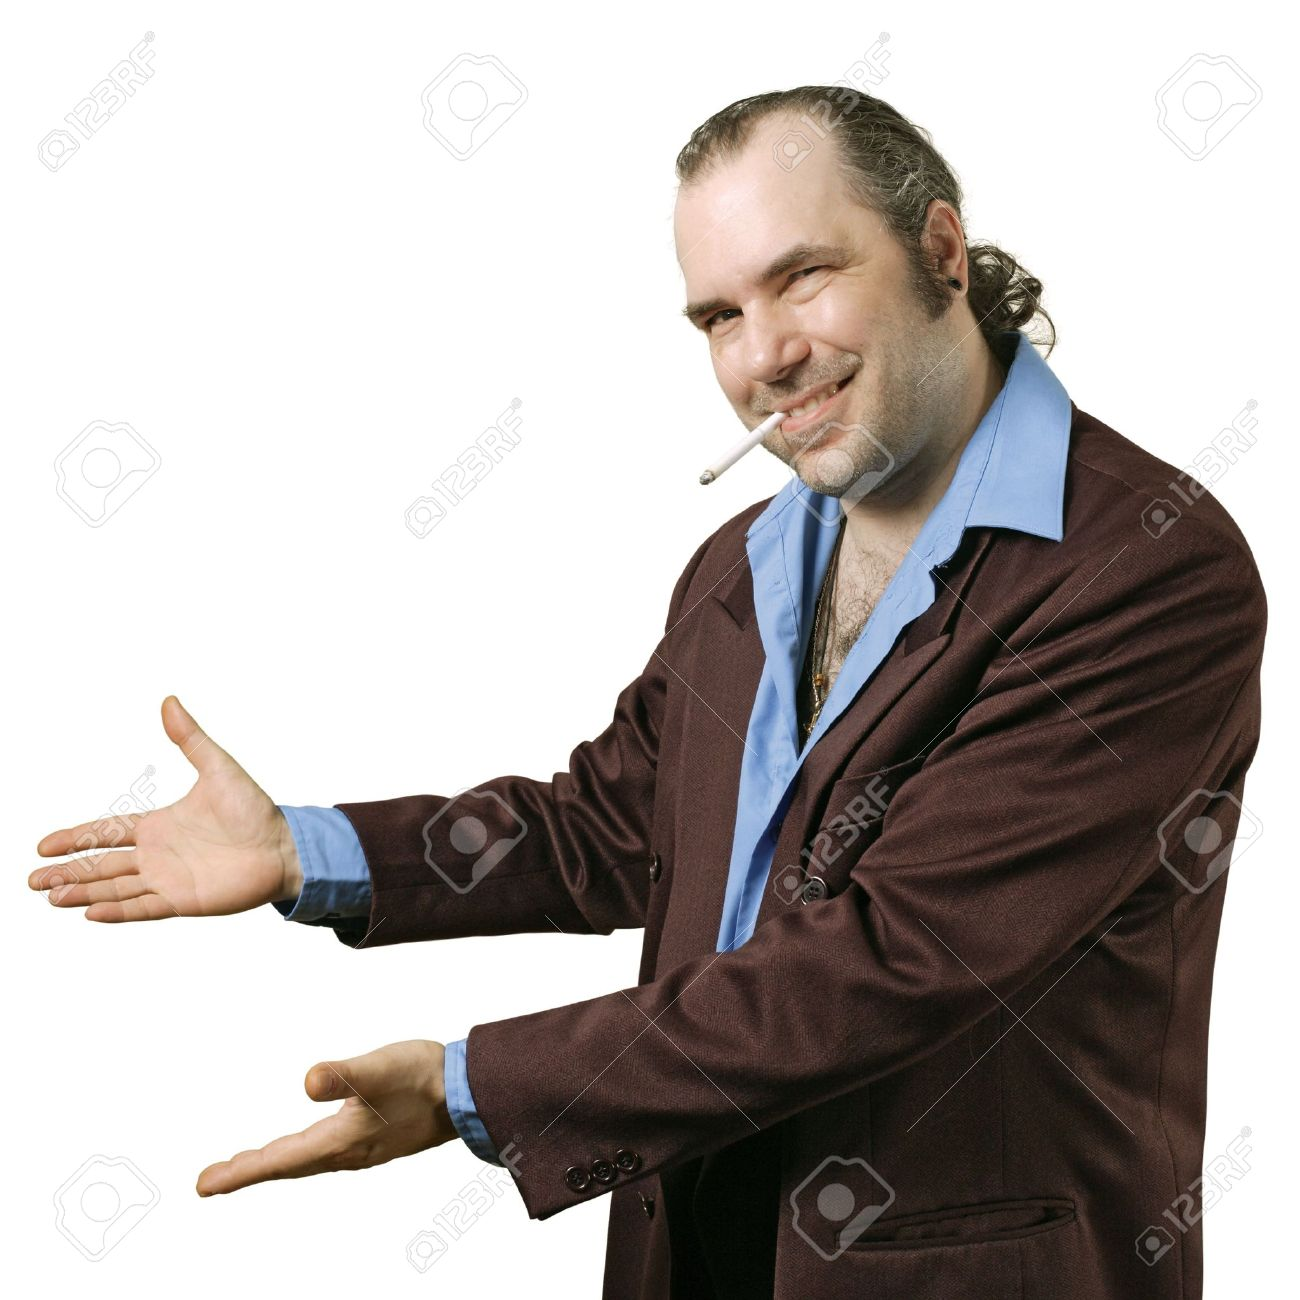 A sleazy car salesman, Con man, retro suit wearing man with happy smile showing you his deals. Stock Photo - 7512921